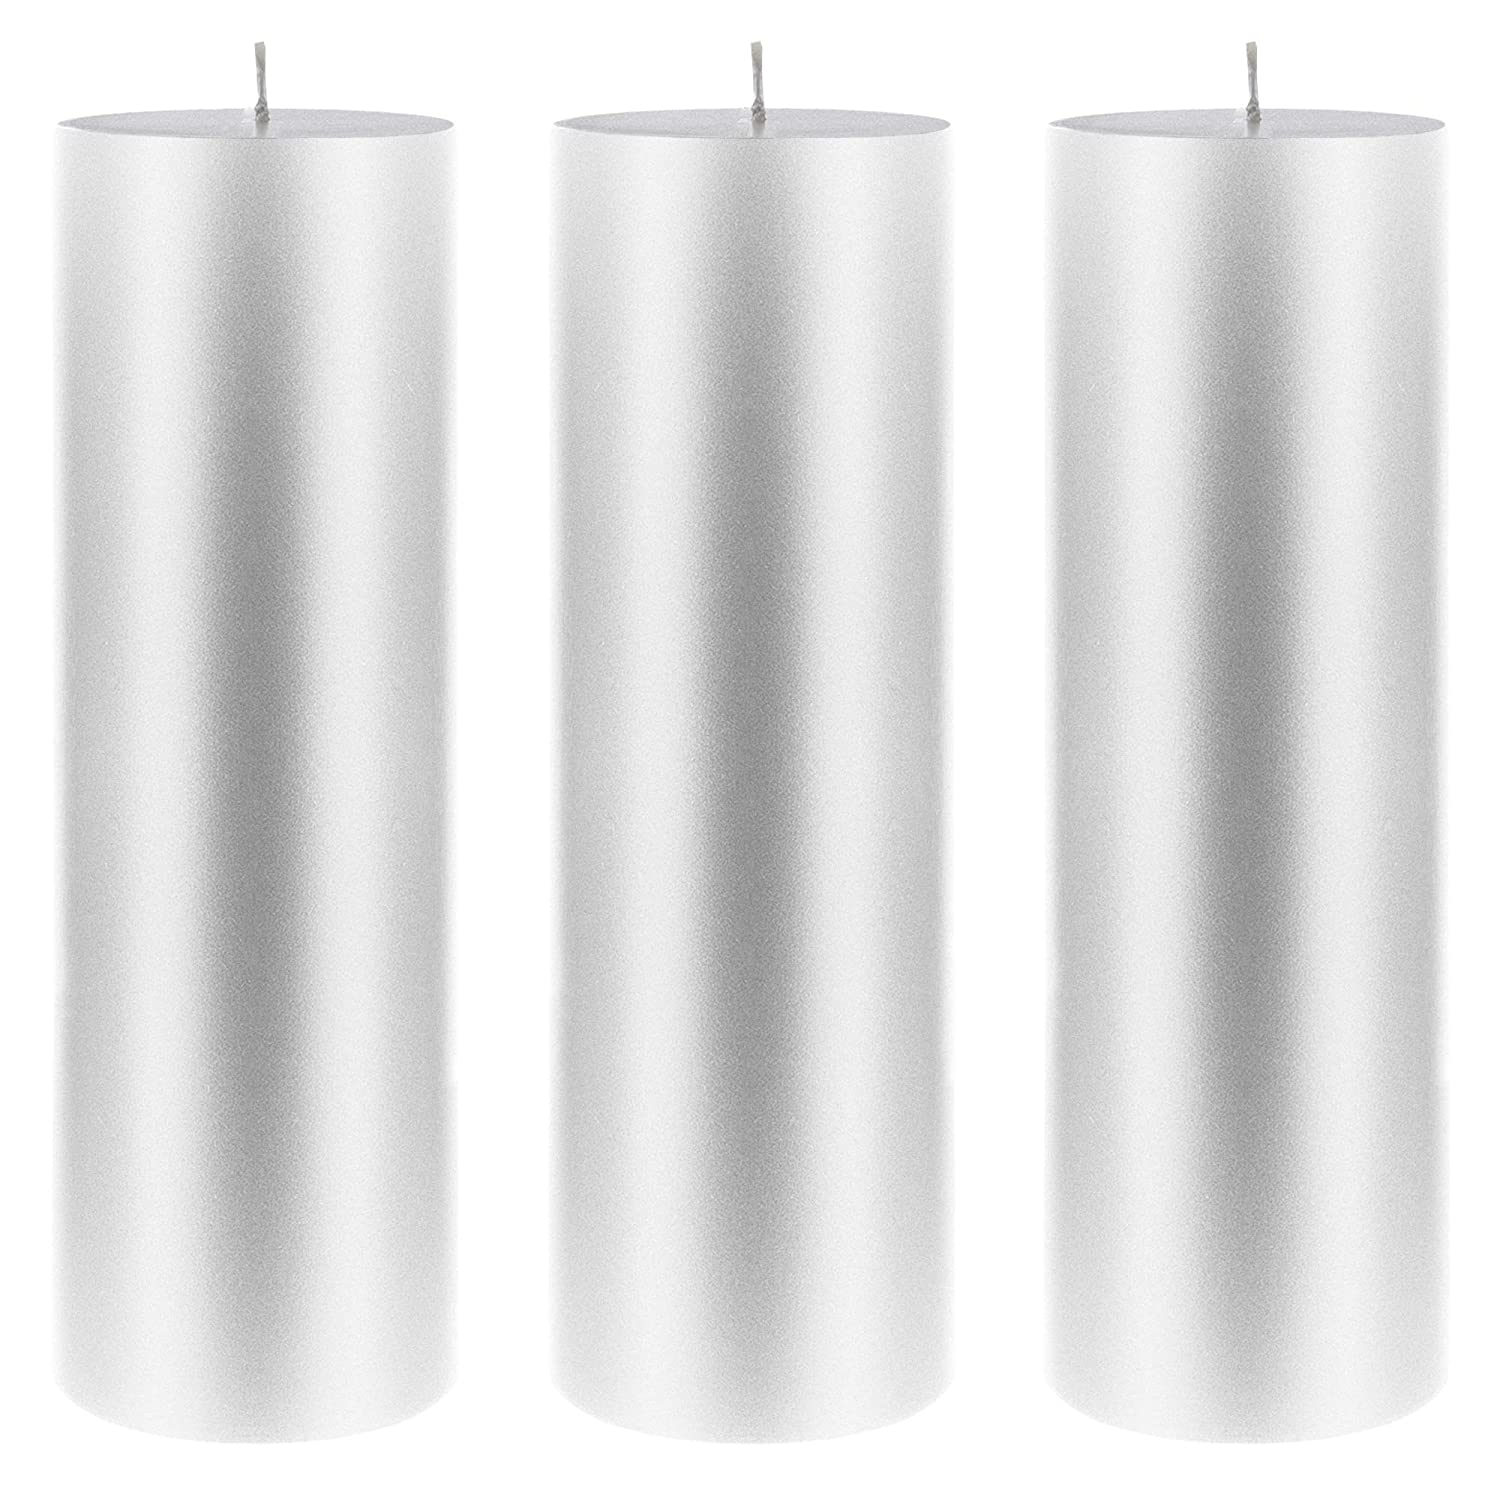 Hand Poured Premium Wax Candles 3 x 3 Mega Candles Unscented Silver Round Pillar Candle Party Favors /& More Celebrations for Home D/écor Baby Showers Wedding Receptions Birthdays